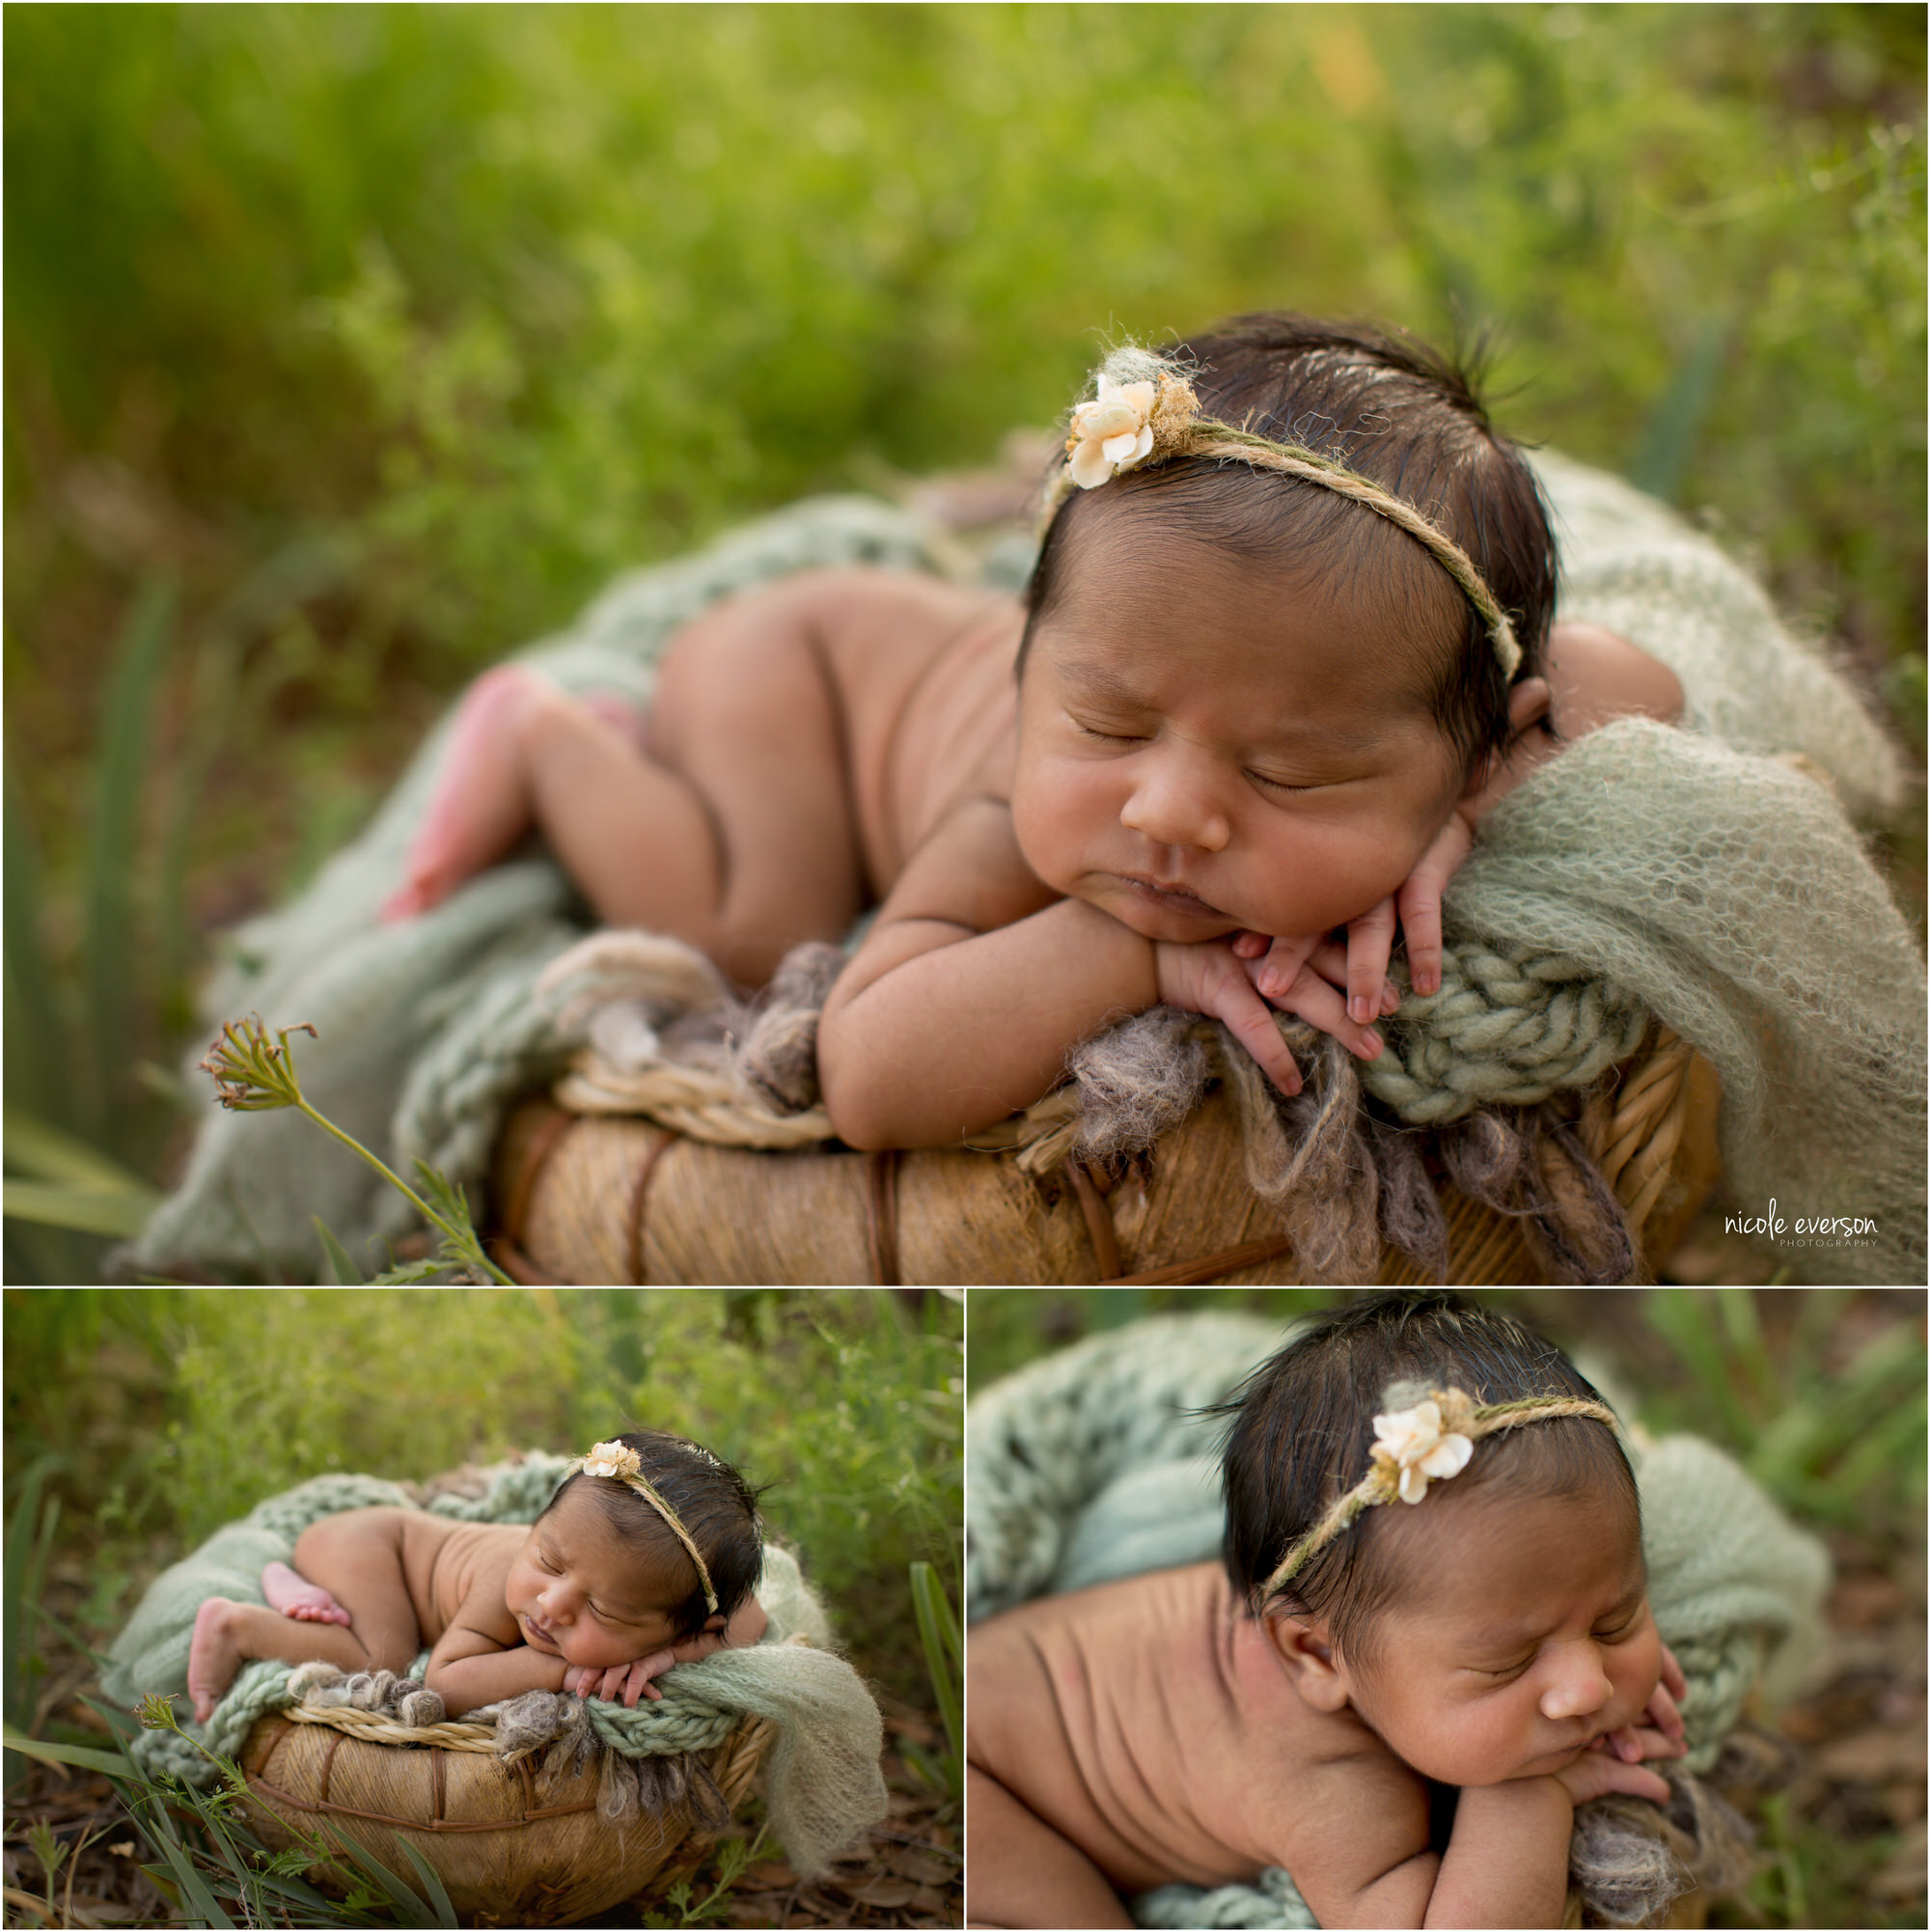 Baby girl wearing a flower headband snuggled on blankets in a basket. Tallahassee Newborn Photography. Nicole Everson Photography.